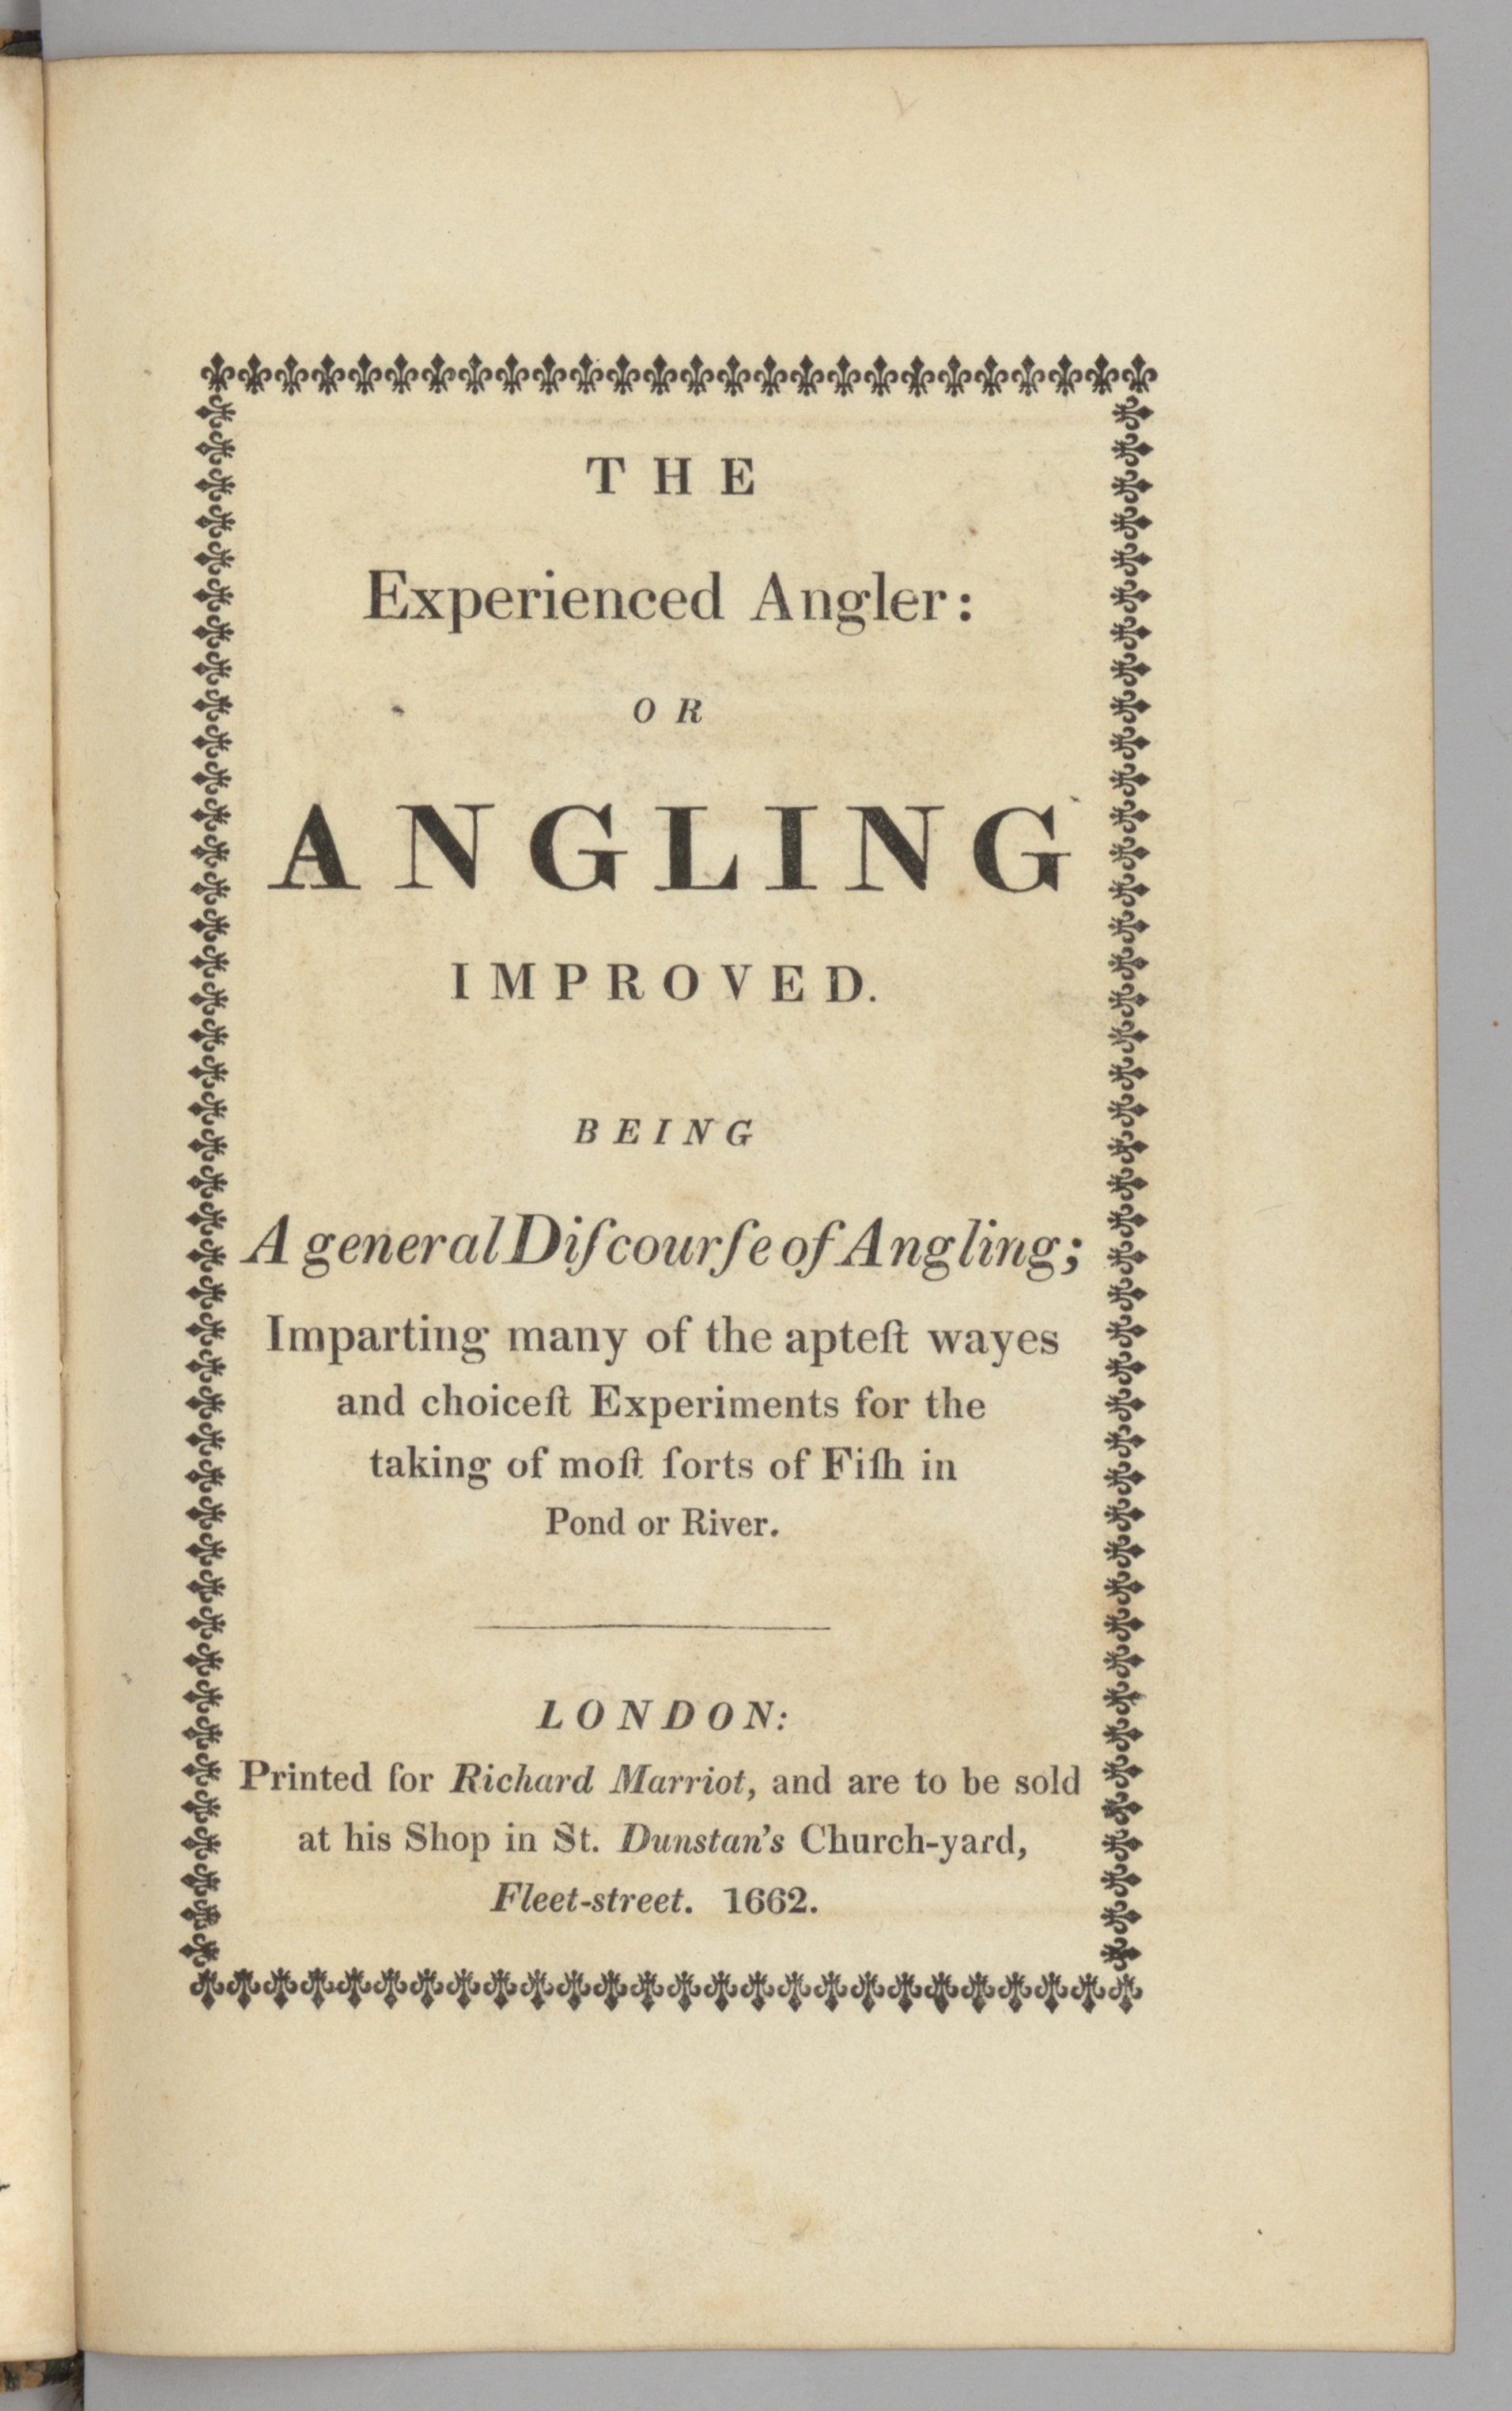 The Experienced Angler Title Page